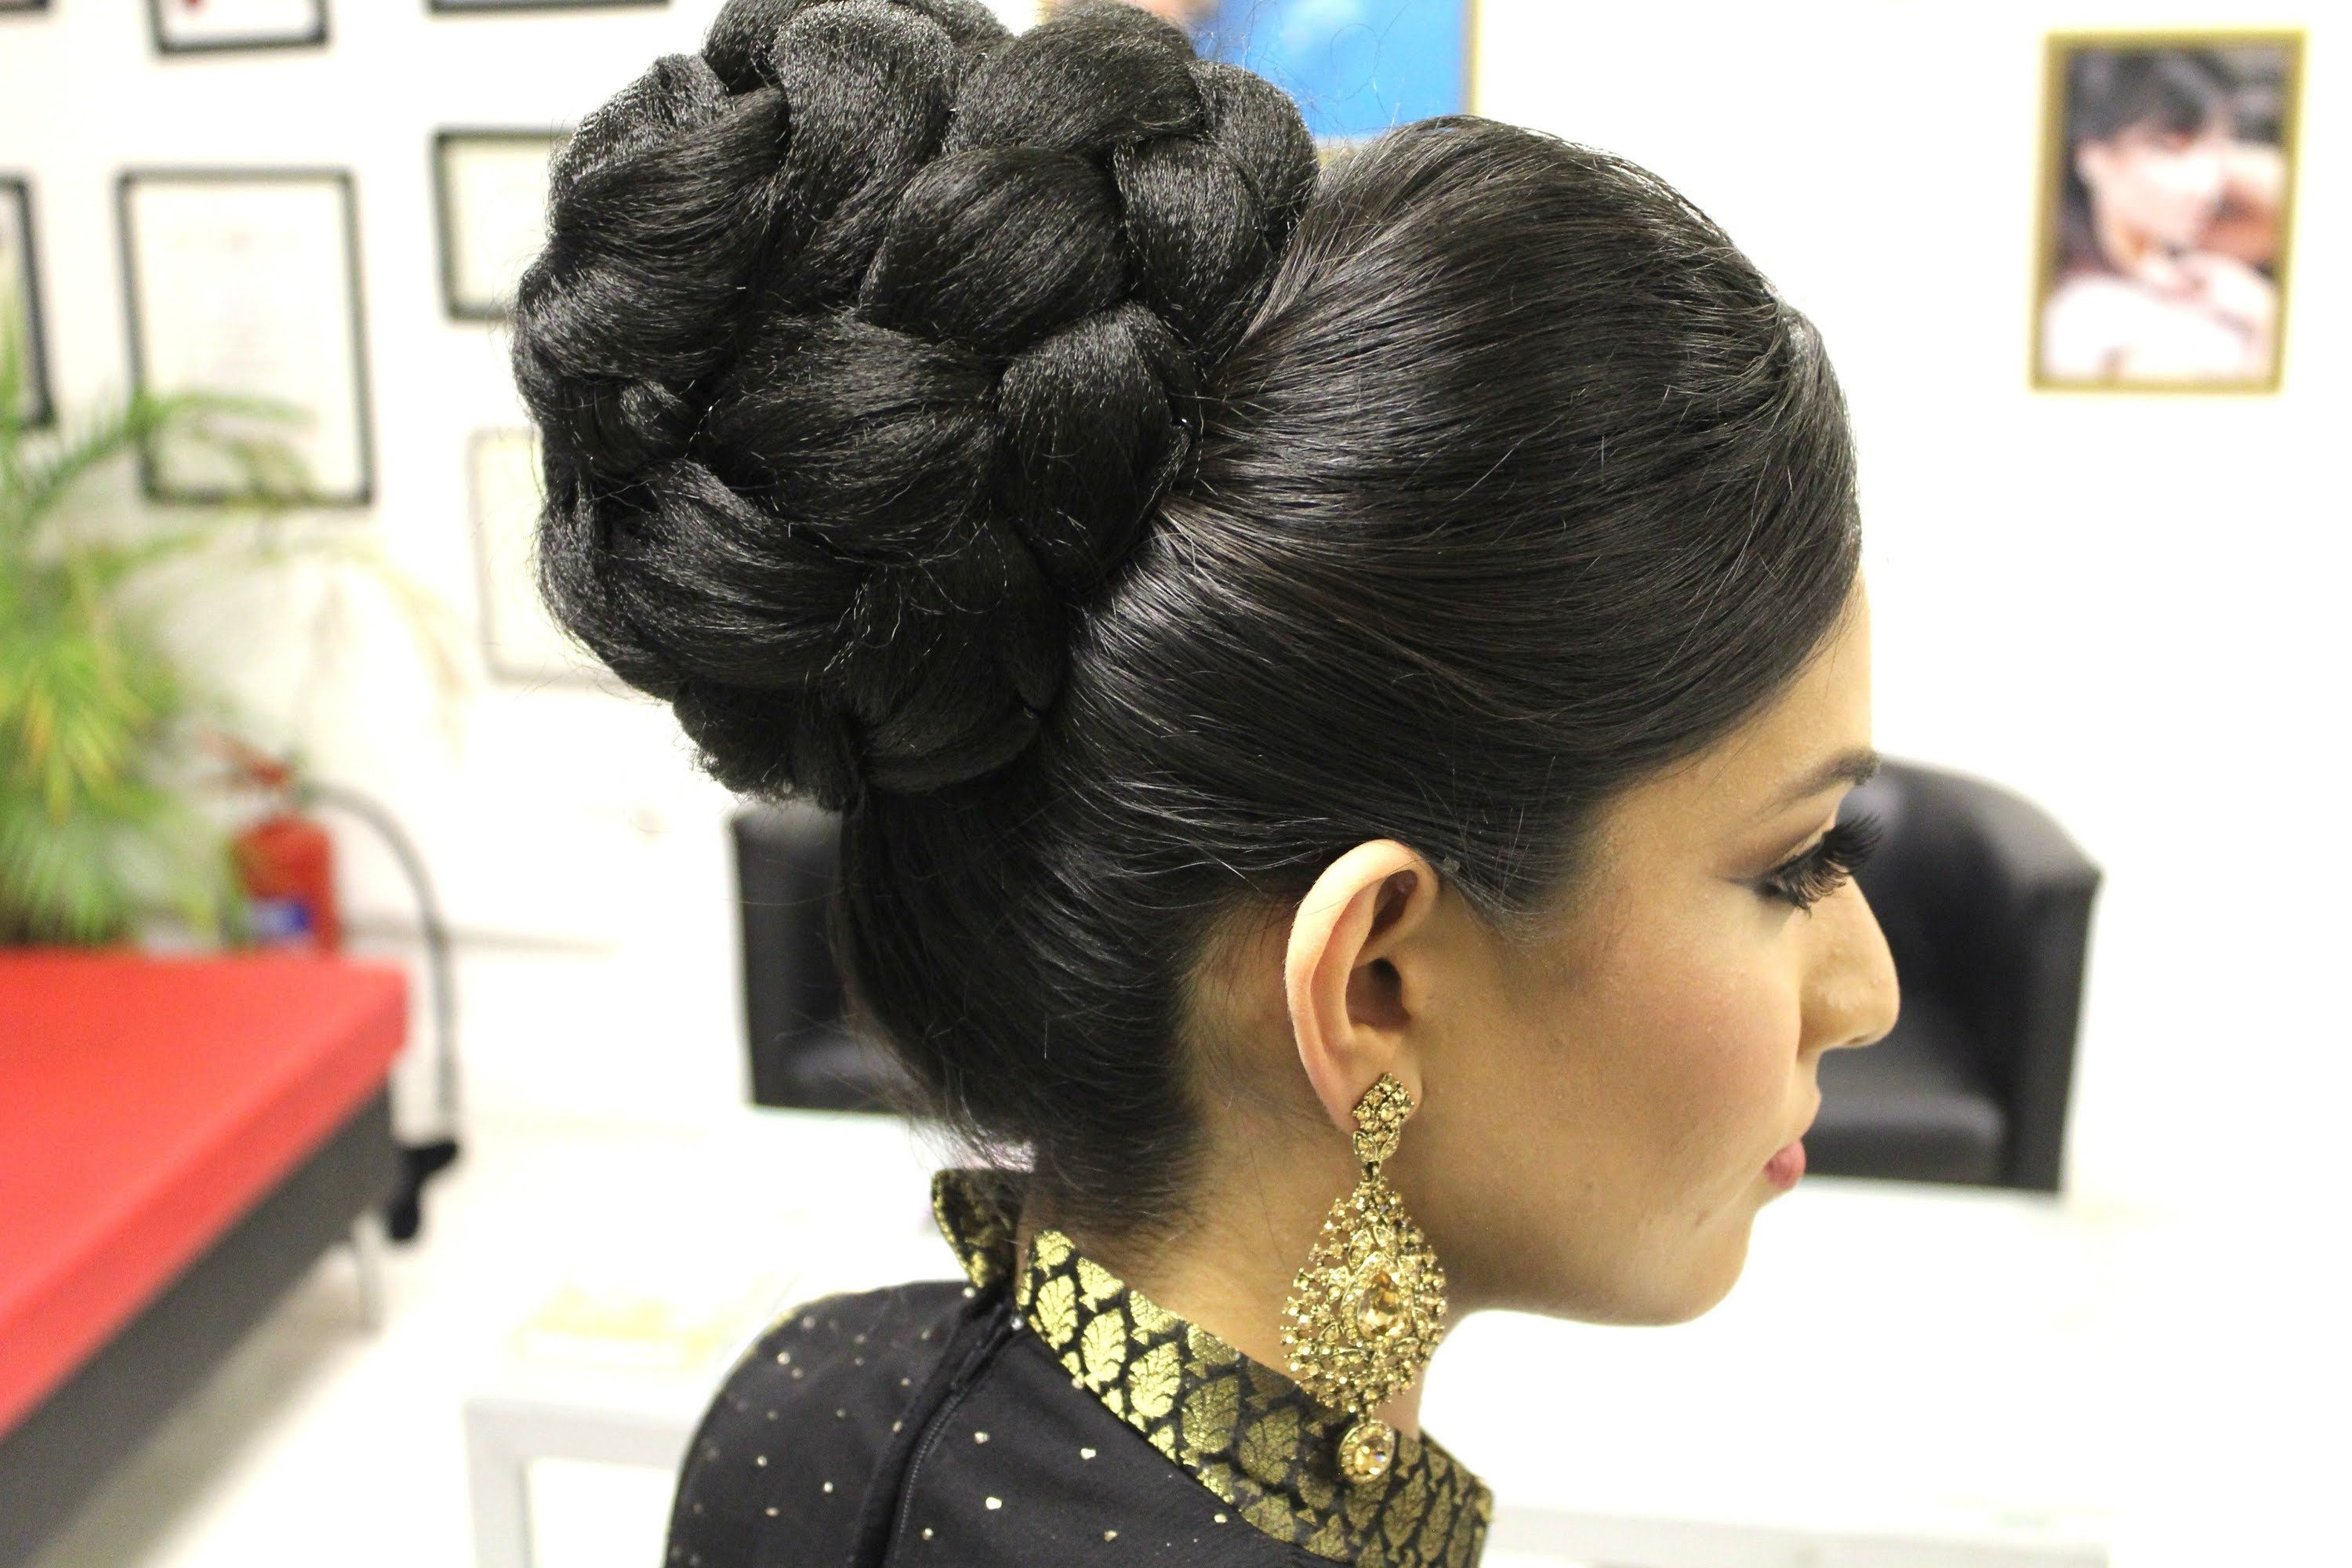 Pakistani, Indian Wedding Hair Style (View 12 of 20)